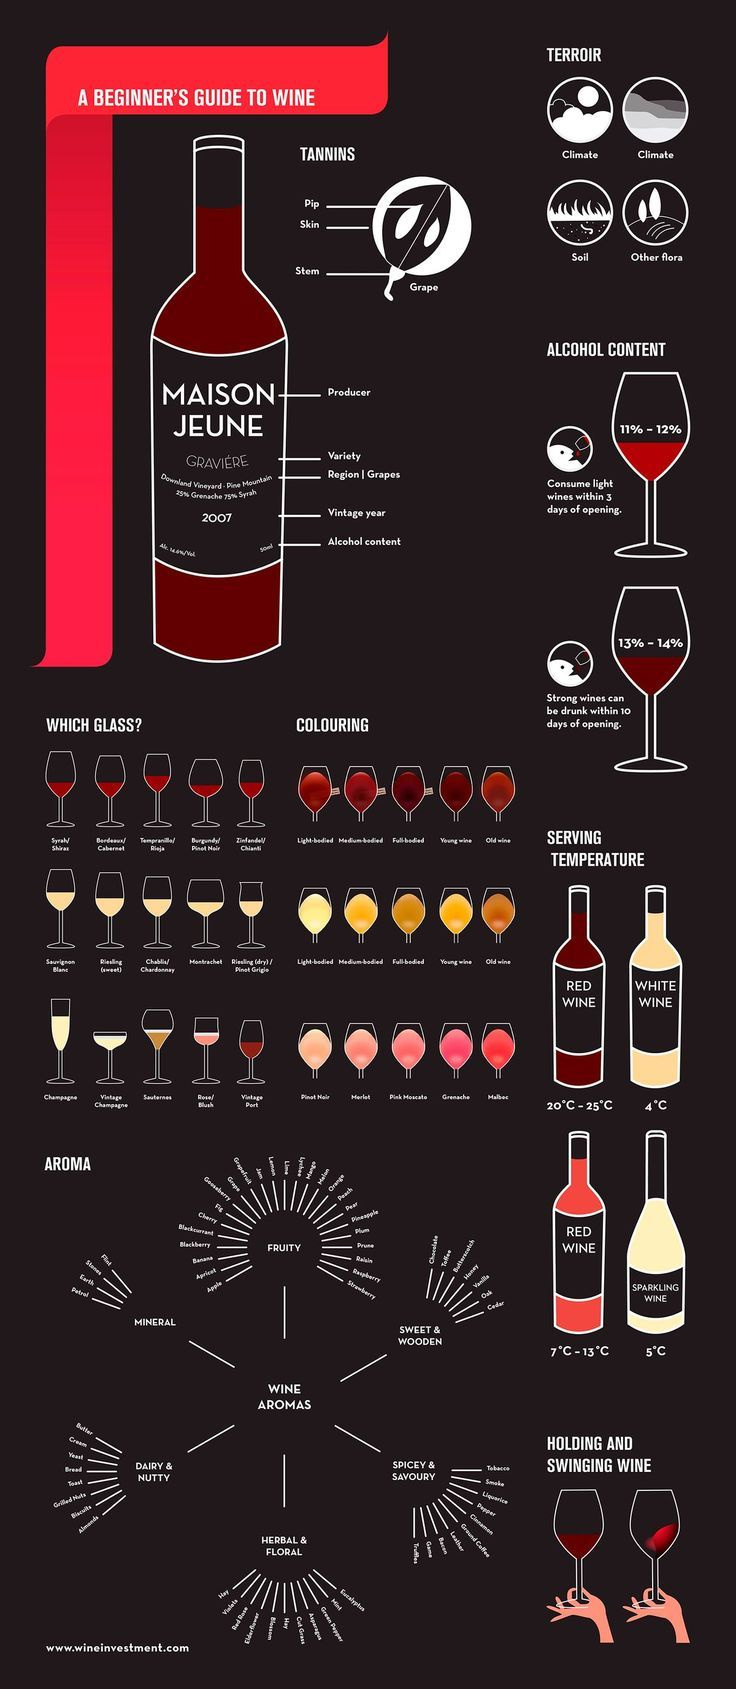 Guide to #wine